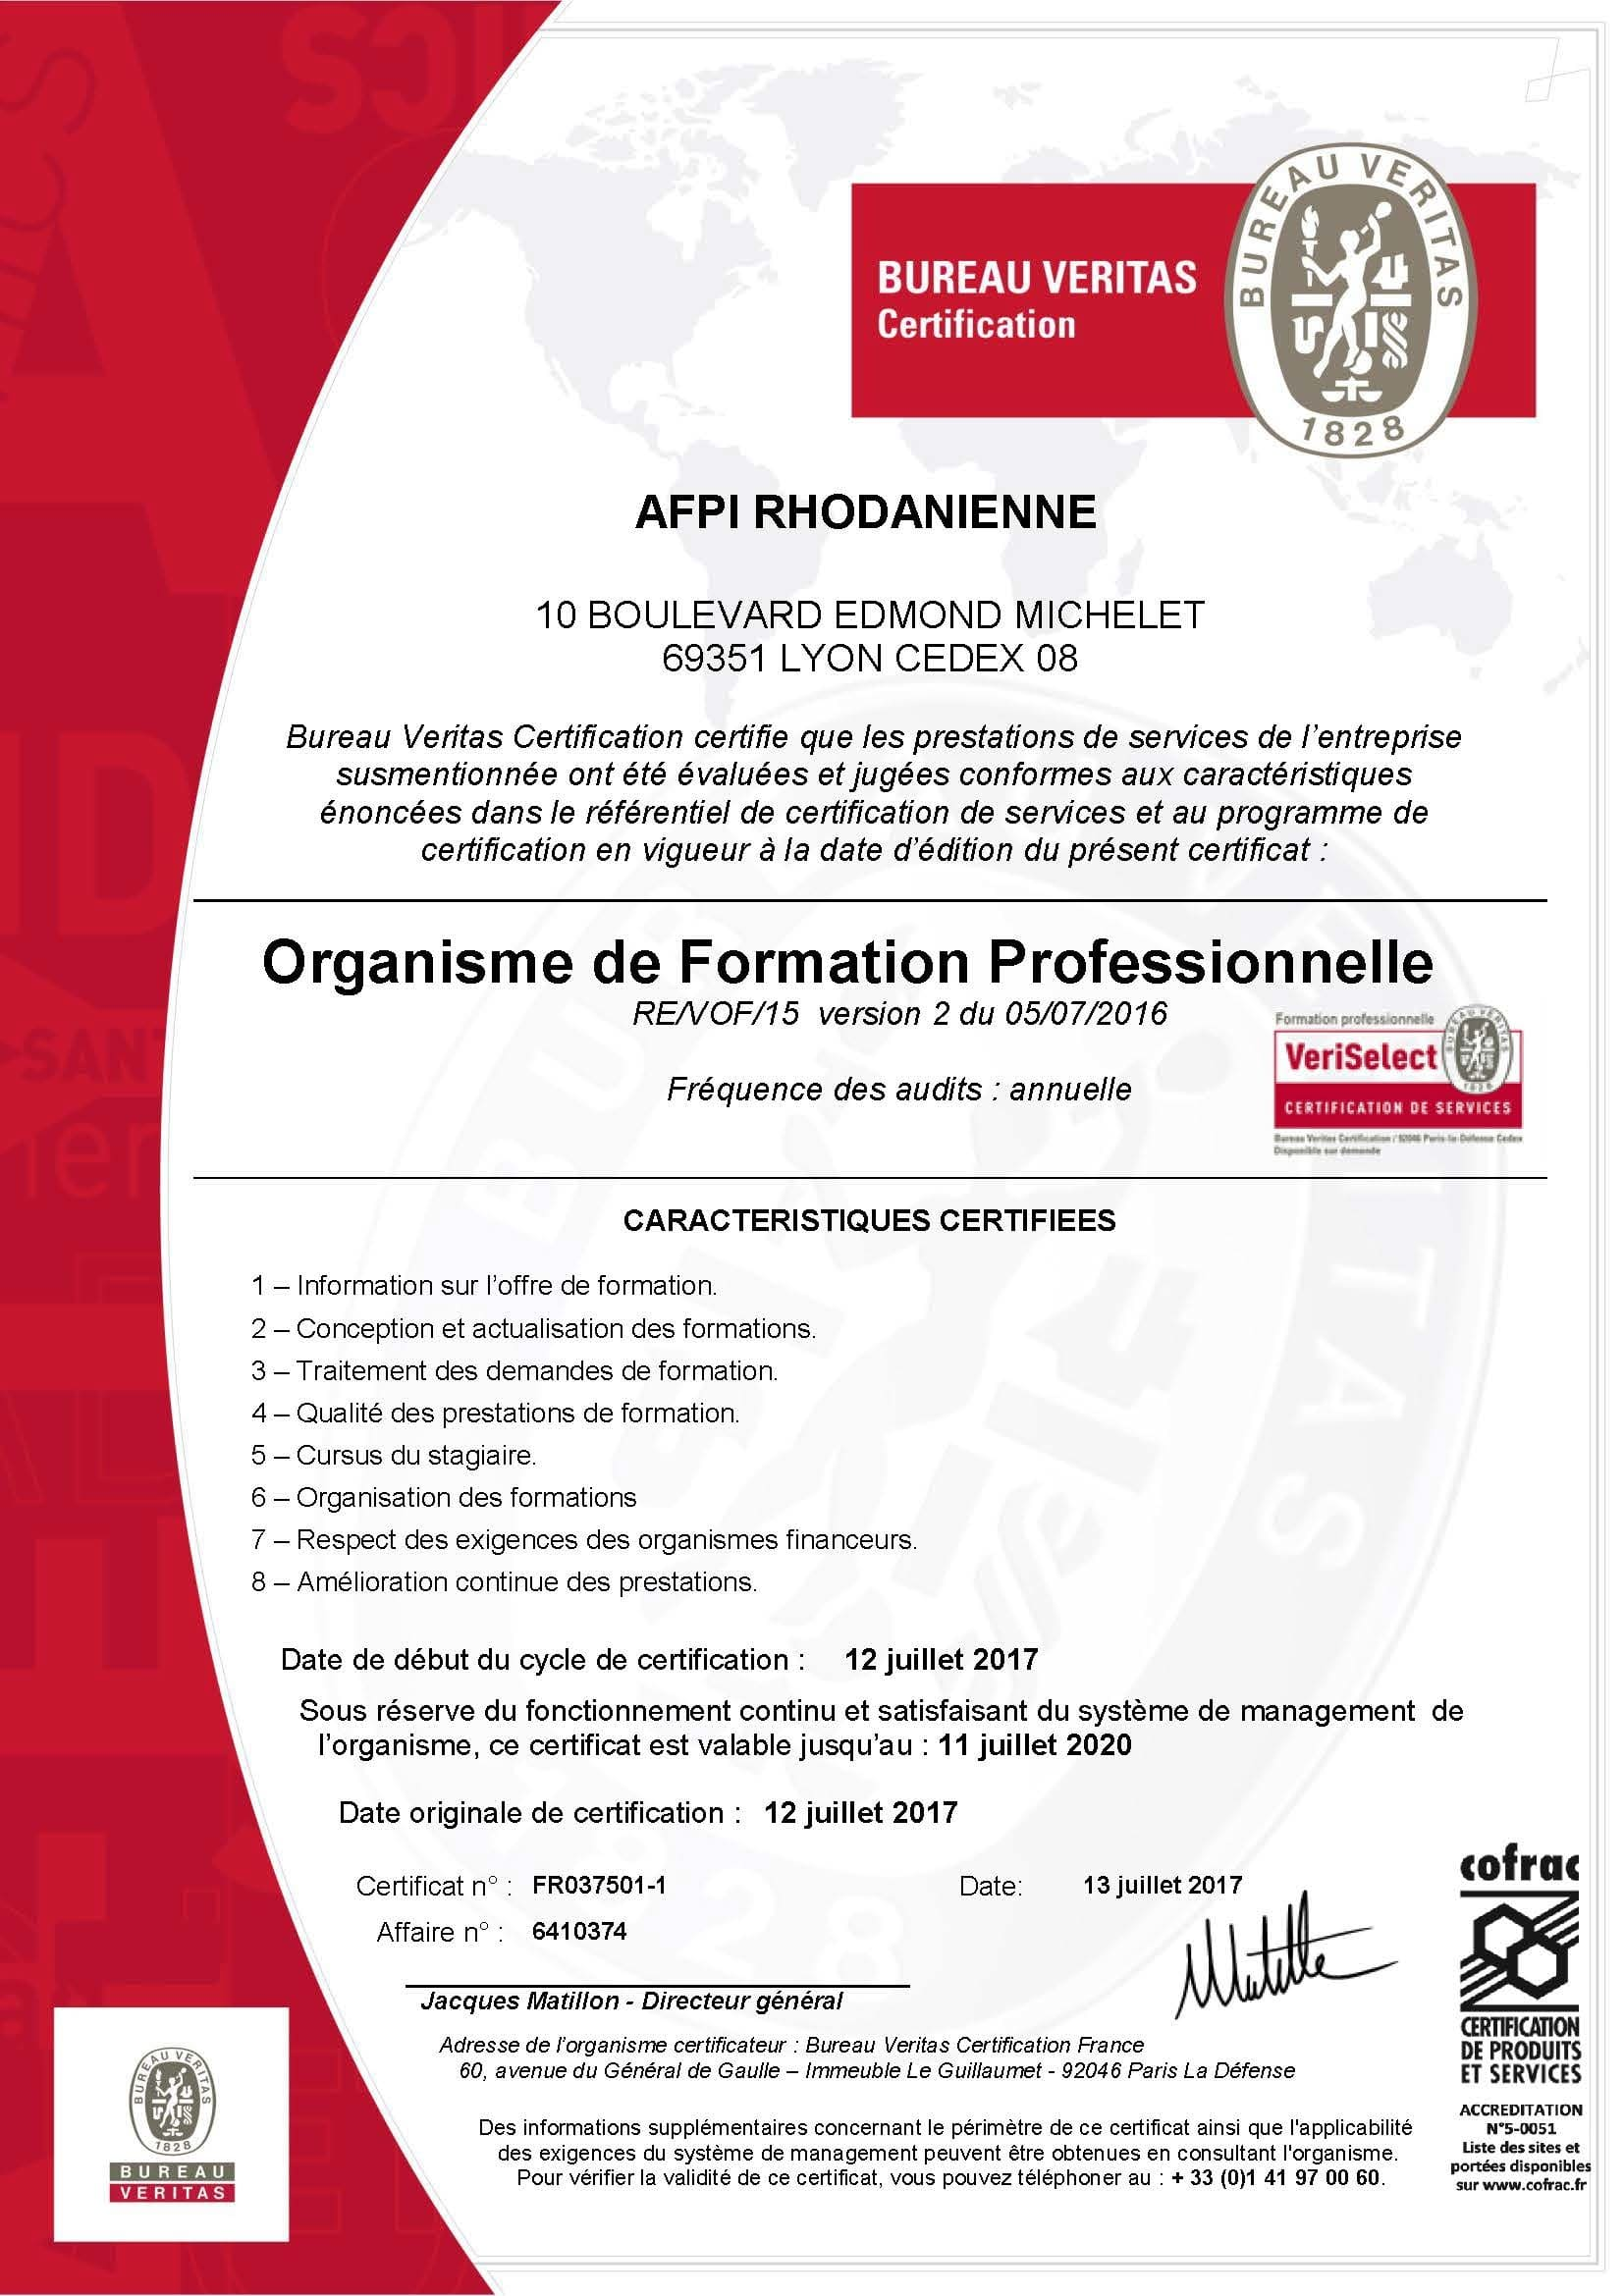 Certification AFPI rhodanienne